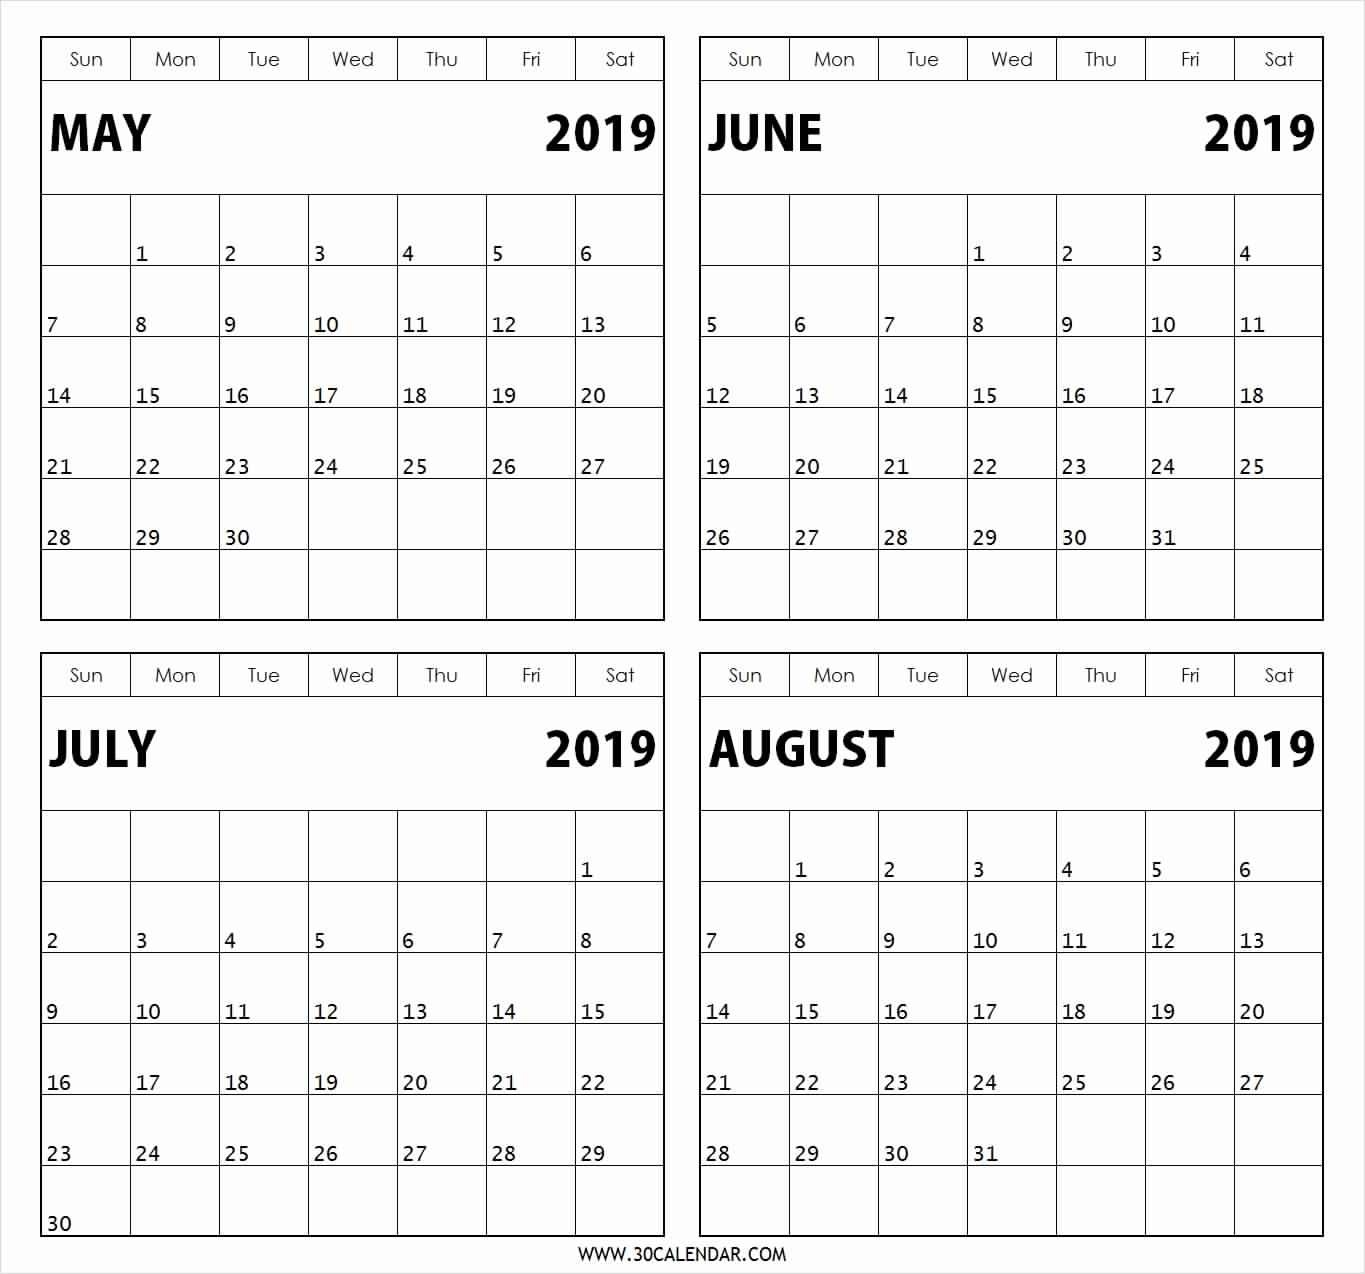 Free Printable 2019 4 Months Per Page Calendar Download | July 2018 Calendar 2019 3 Months Per Page